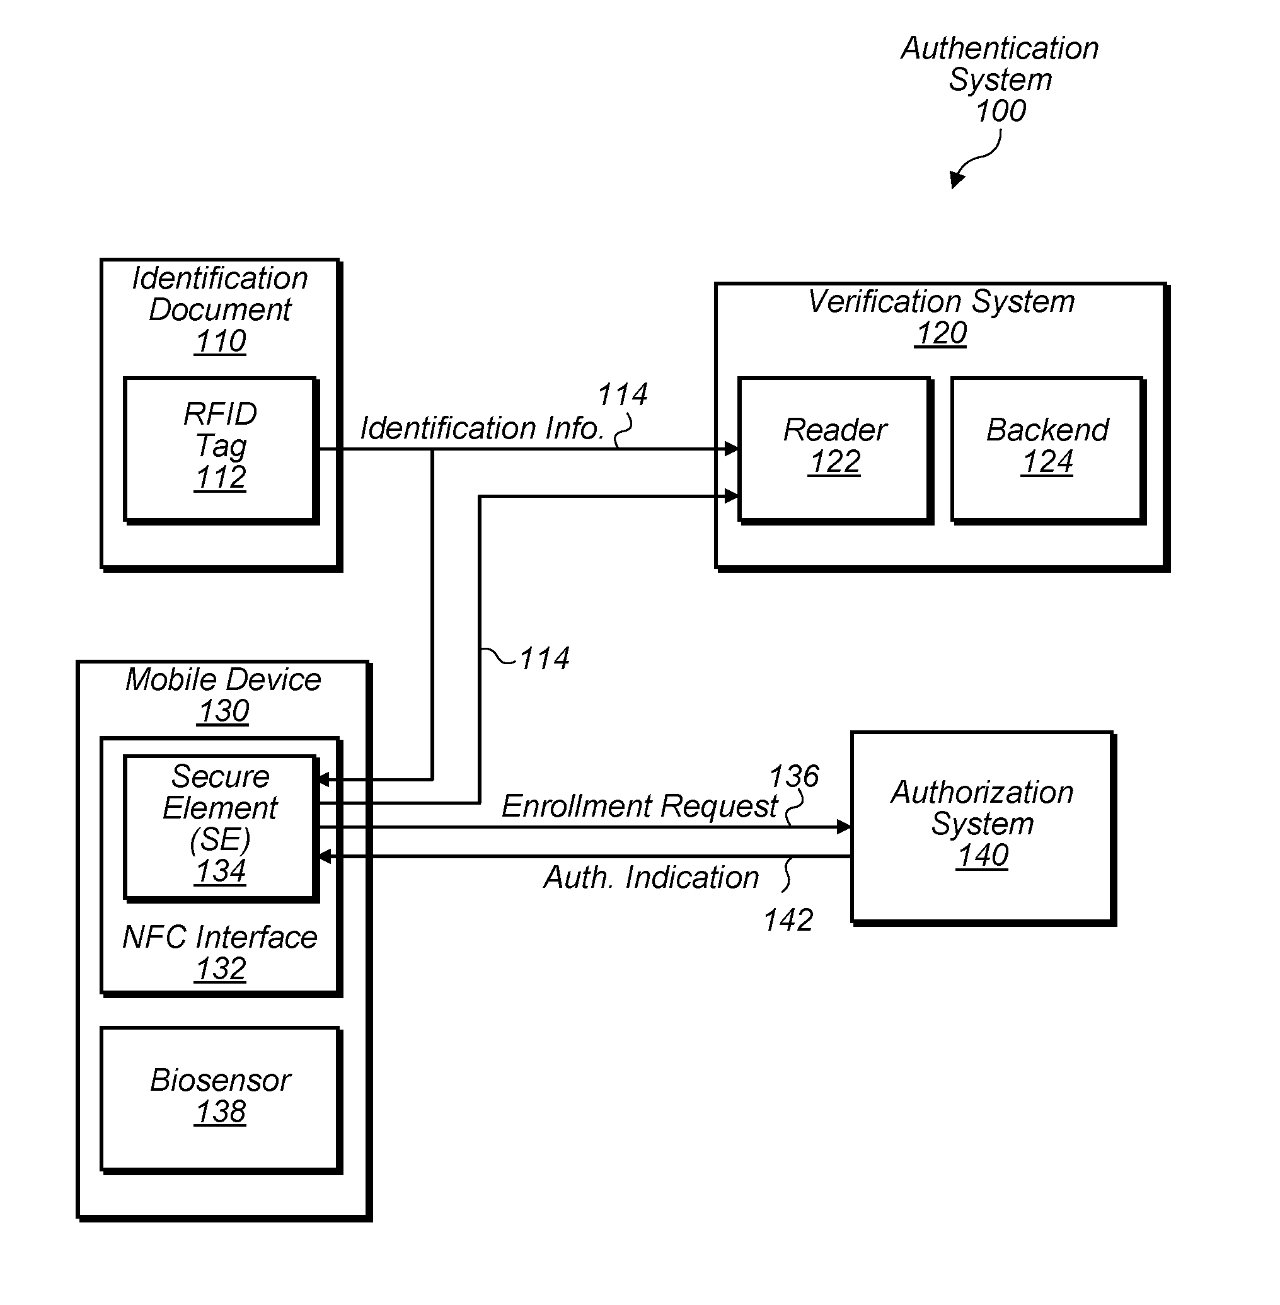 Detail from the patent showing a simplified process for authenticating ID